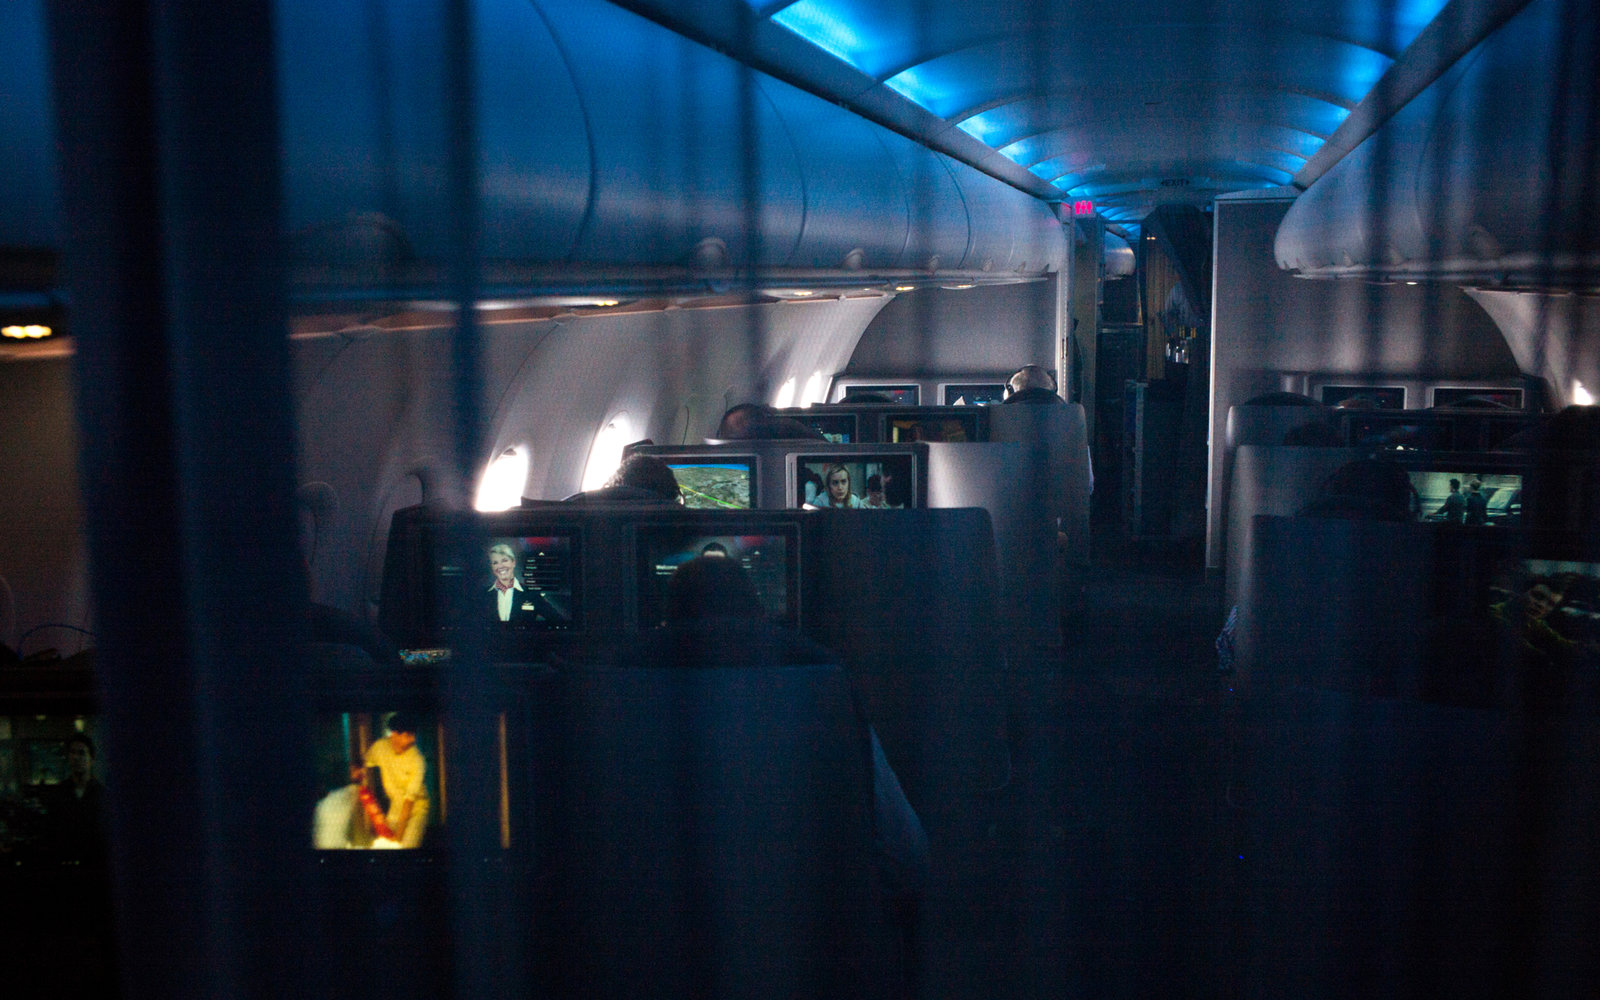 The Secret Airplane Bedrooms Most Passengers Never Get to See